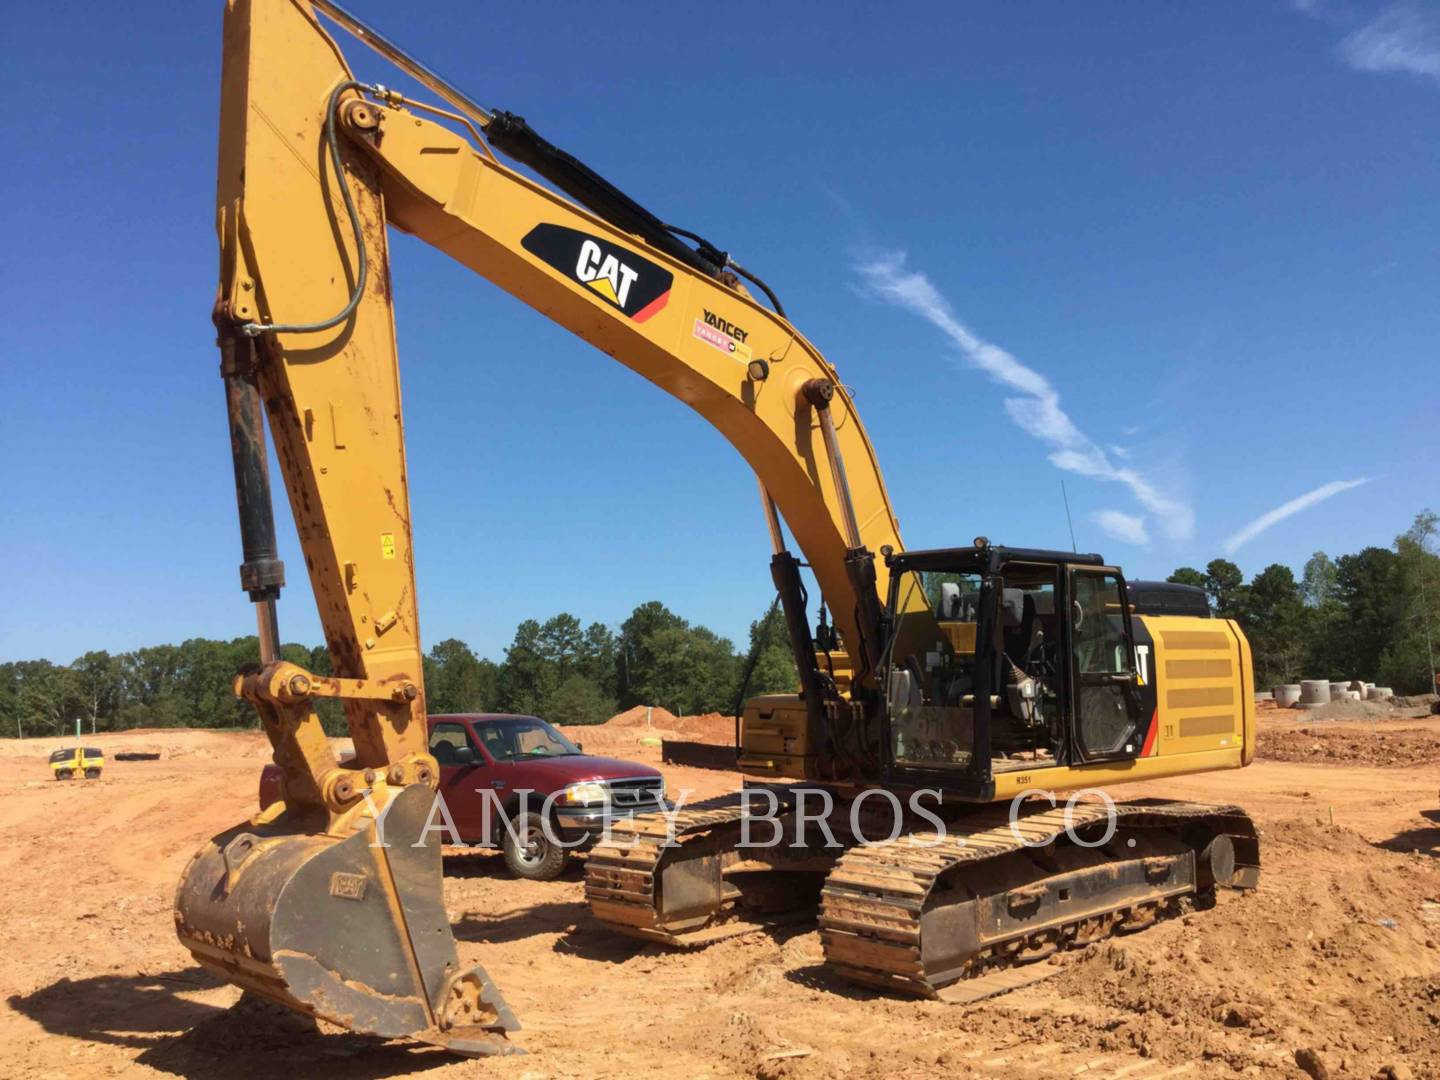 2016 - CATERPILLAR - 336FL